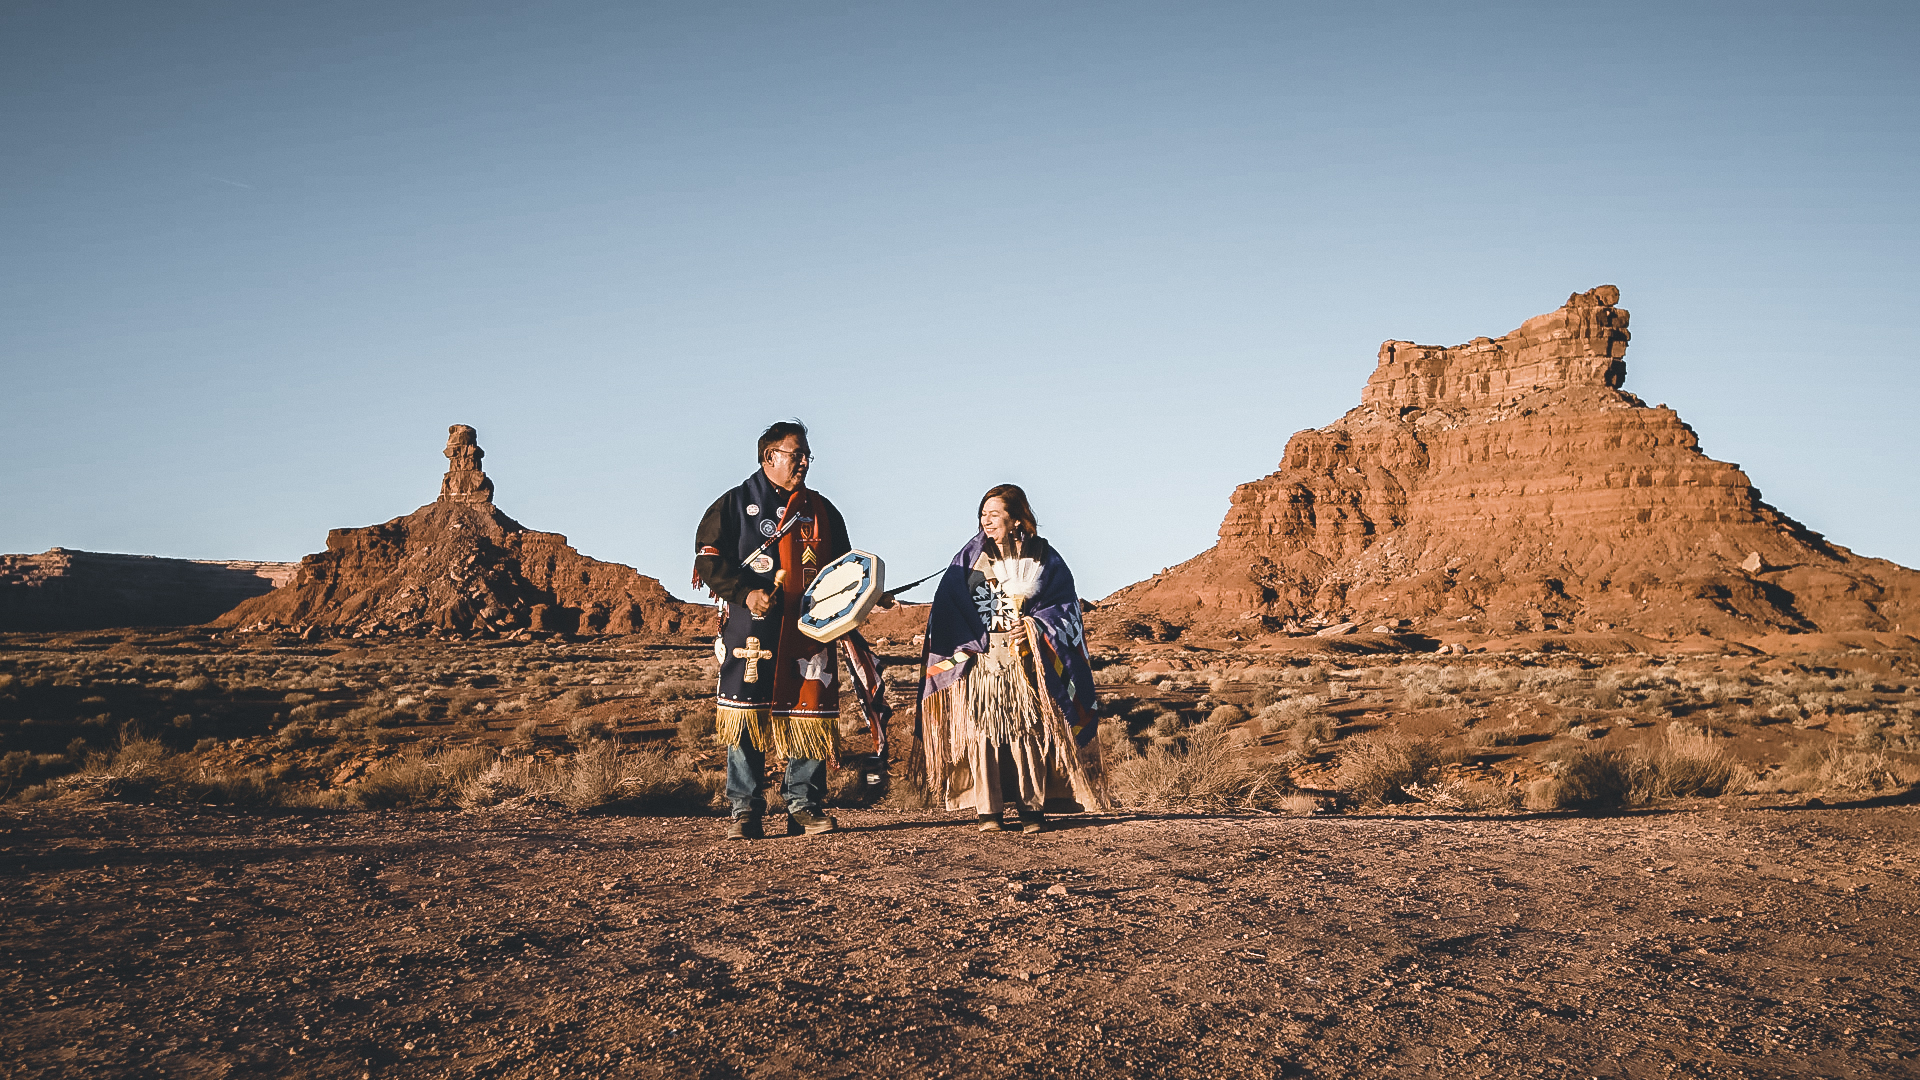 Kee Kaibetony and his wife, Rebecca, play their ancestral song in the Valley of the Gods, a sacred area no longer protected by the new boundaries of Bears Ears National Monument.